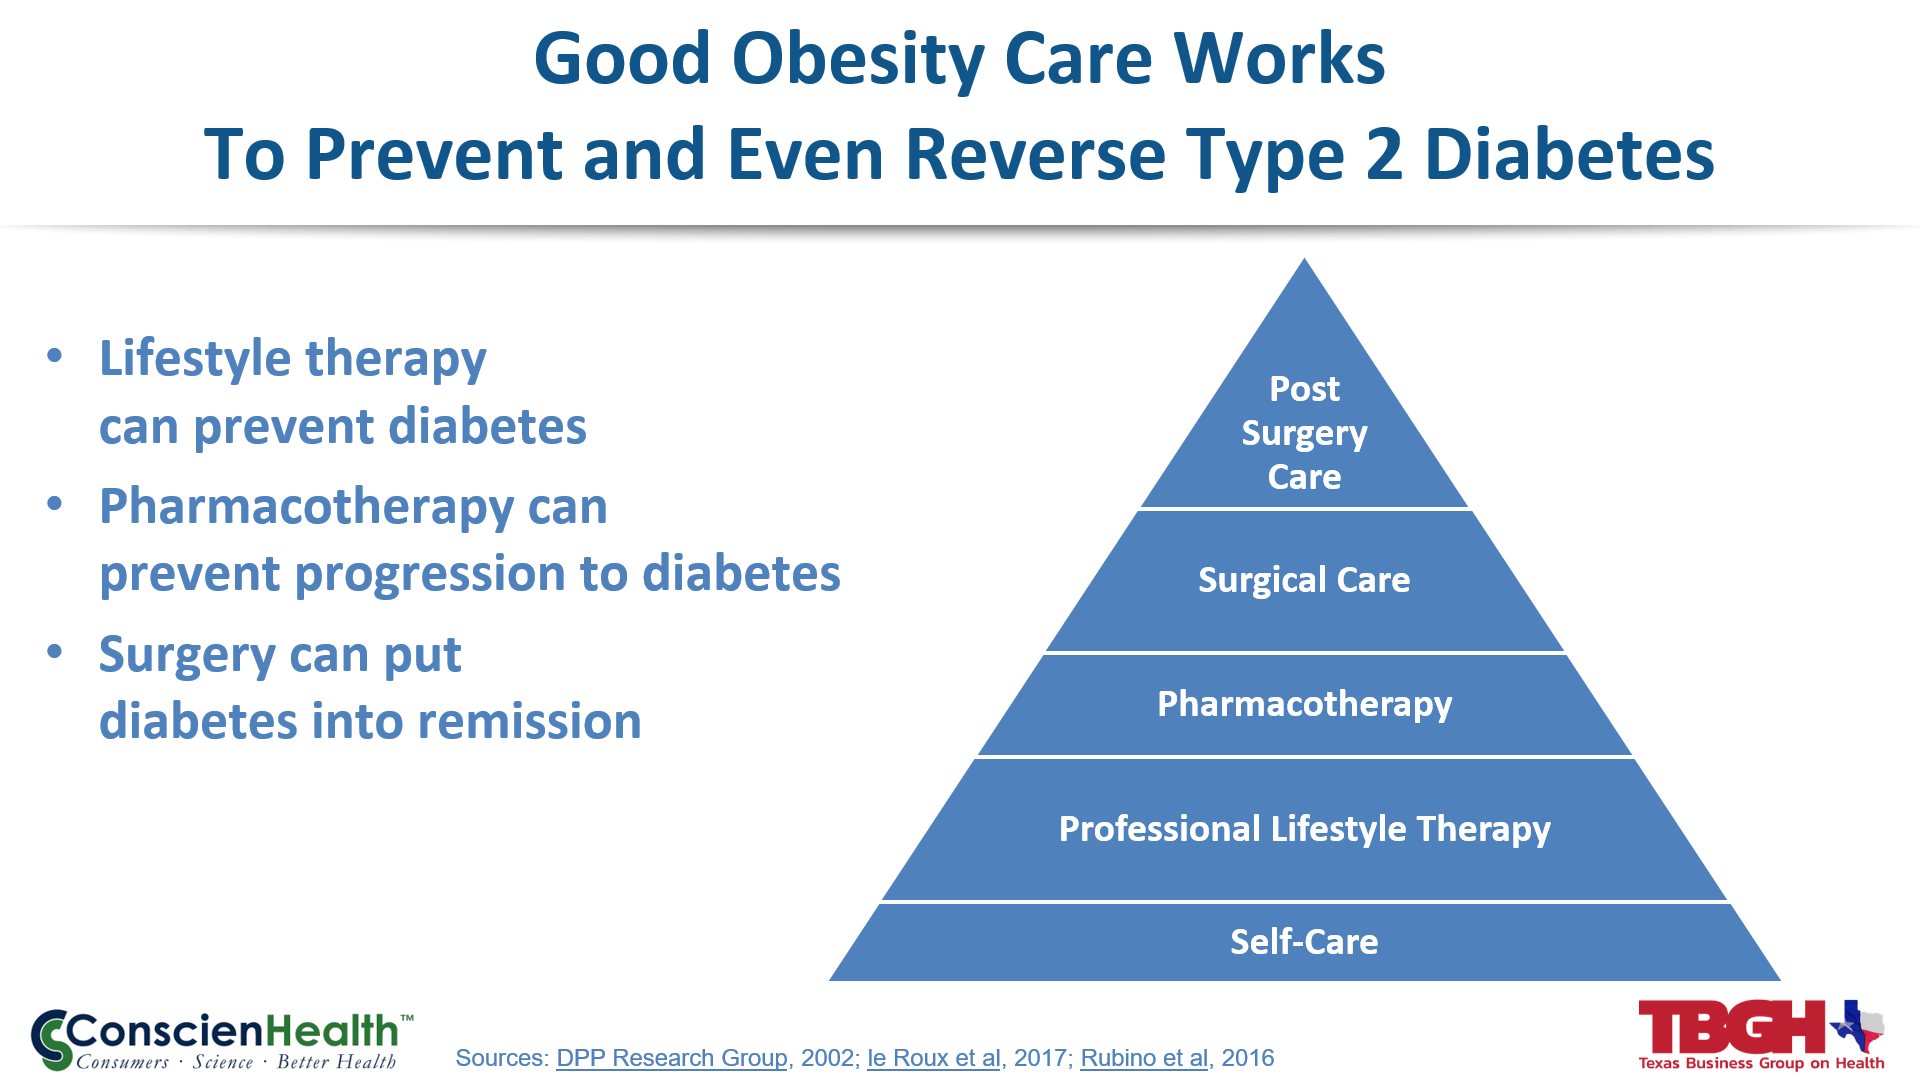 Obesity Care Works